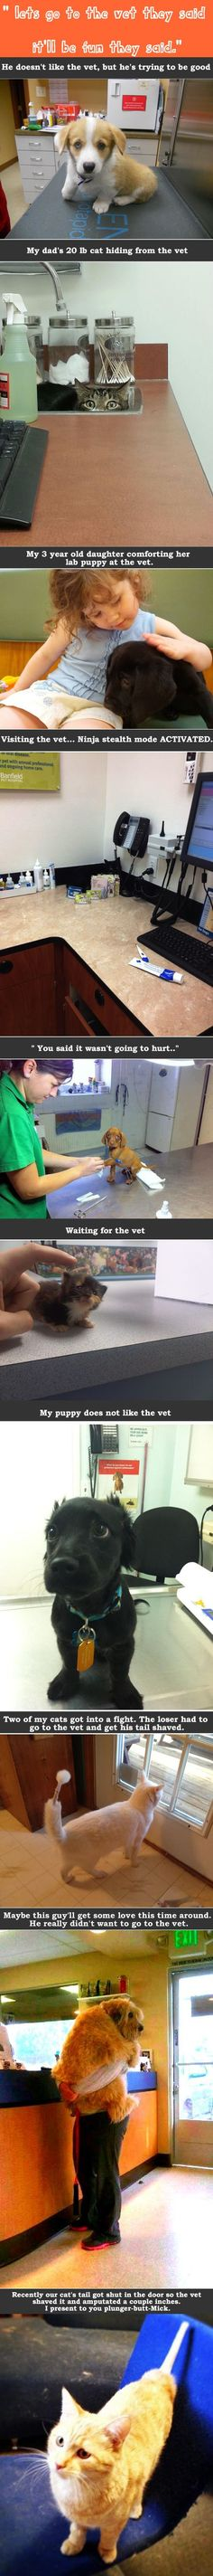 Pet's trips to the vet.